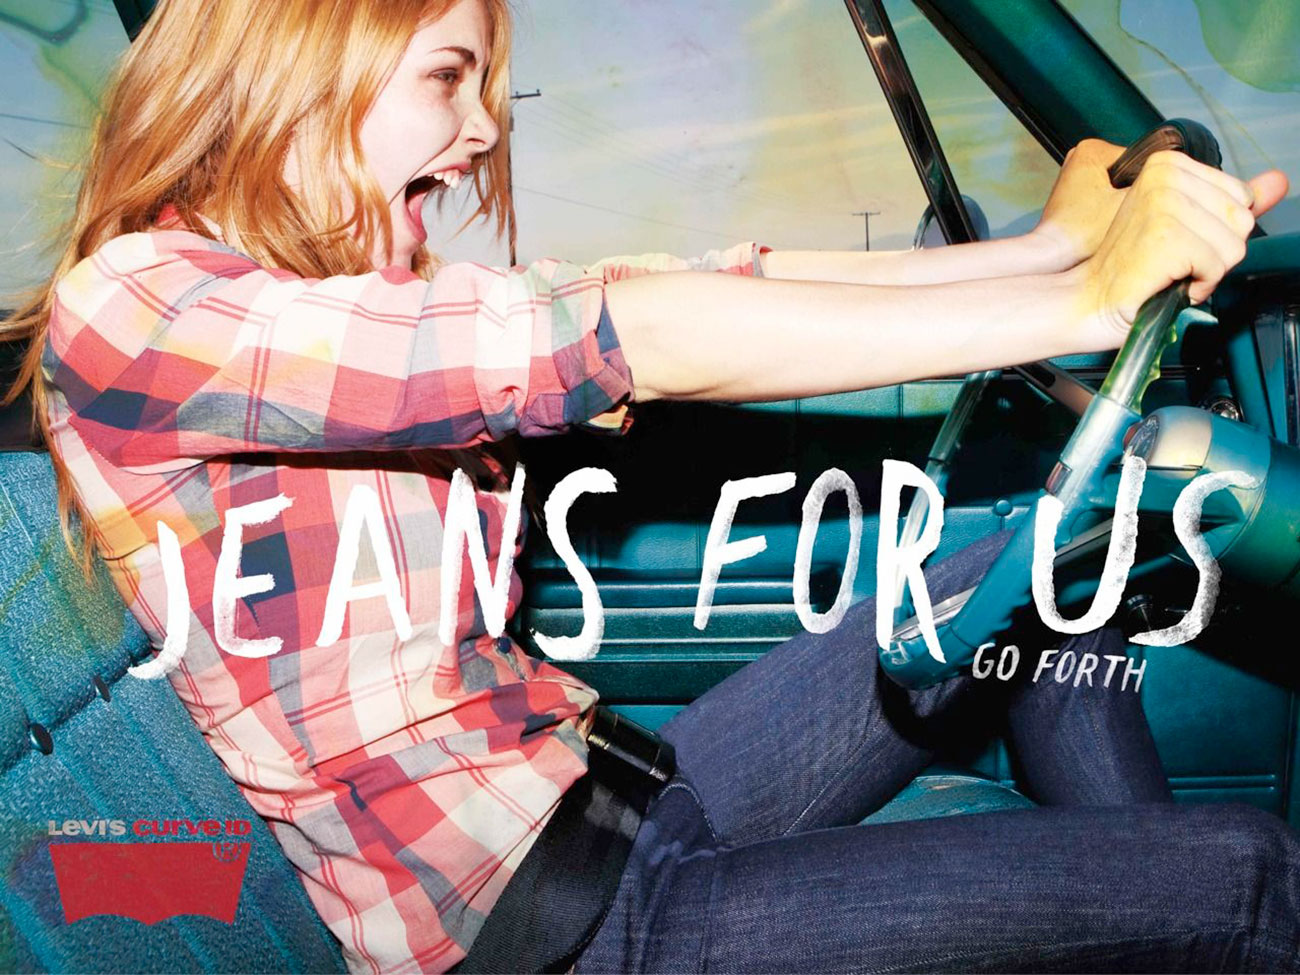 levis-ad-campaign-curve-id-go-forth.jpg